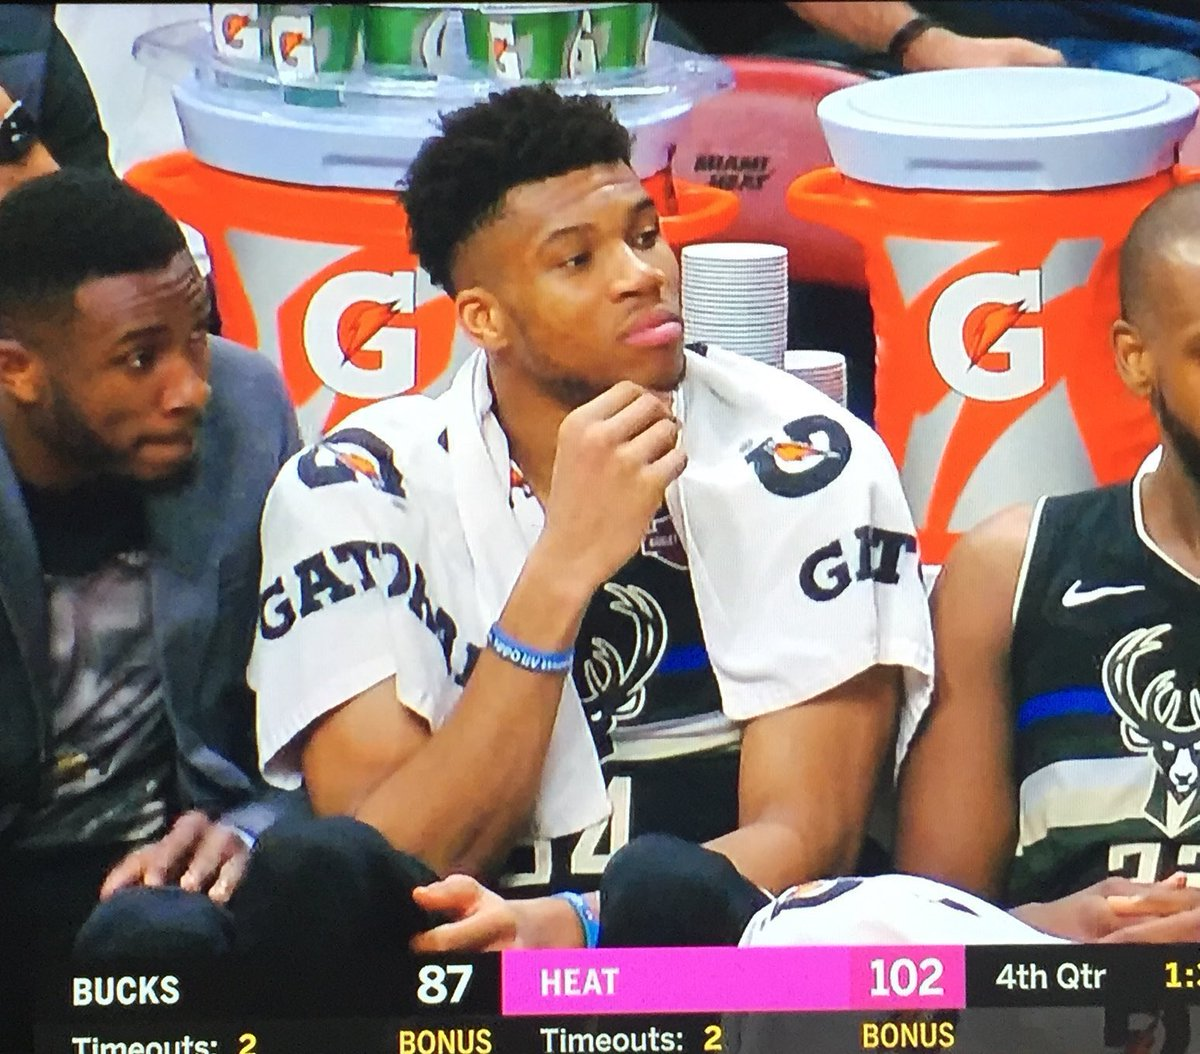 The Heat always leaves Giannis thinking about something 😂😂😂